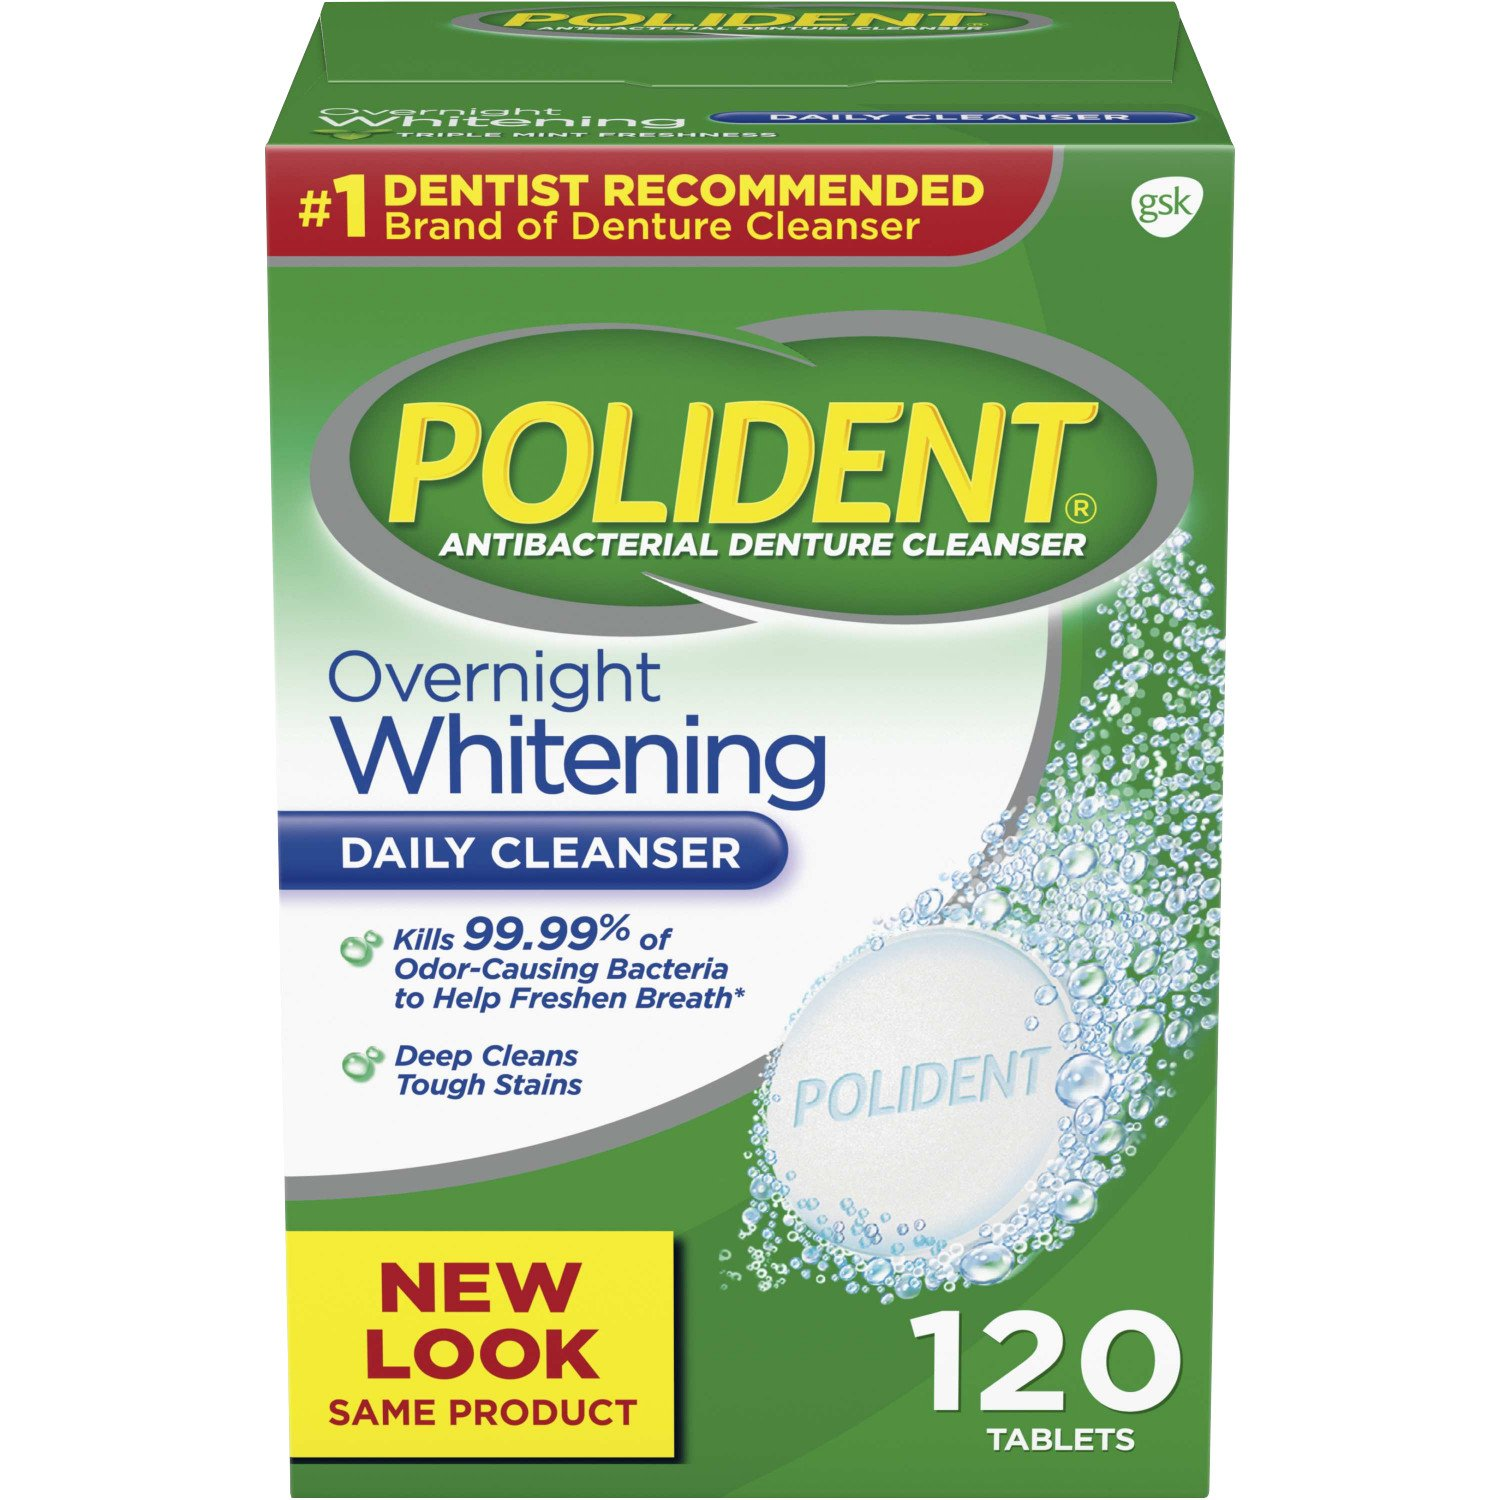 Polident Overnight Whitening Antibacterial Denture Cleanser Effervescent Tablets, 120 count Everready First Aid 03449